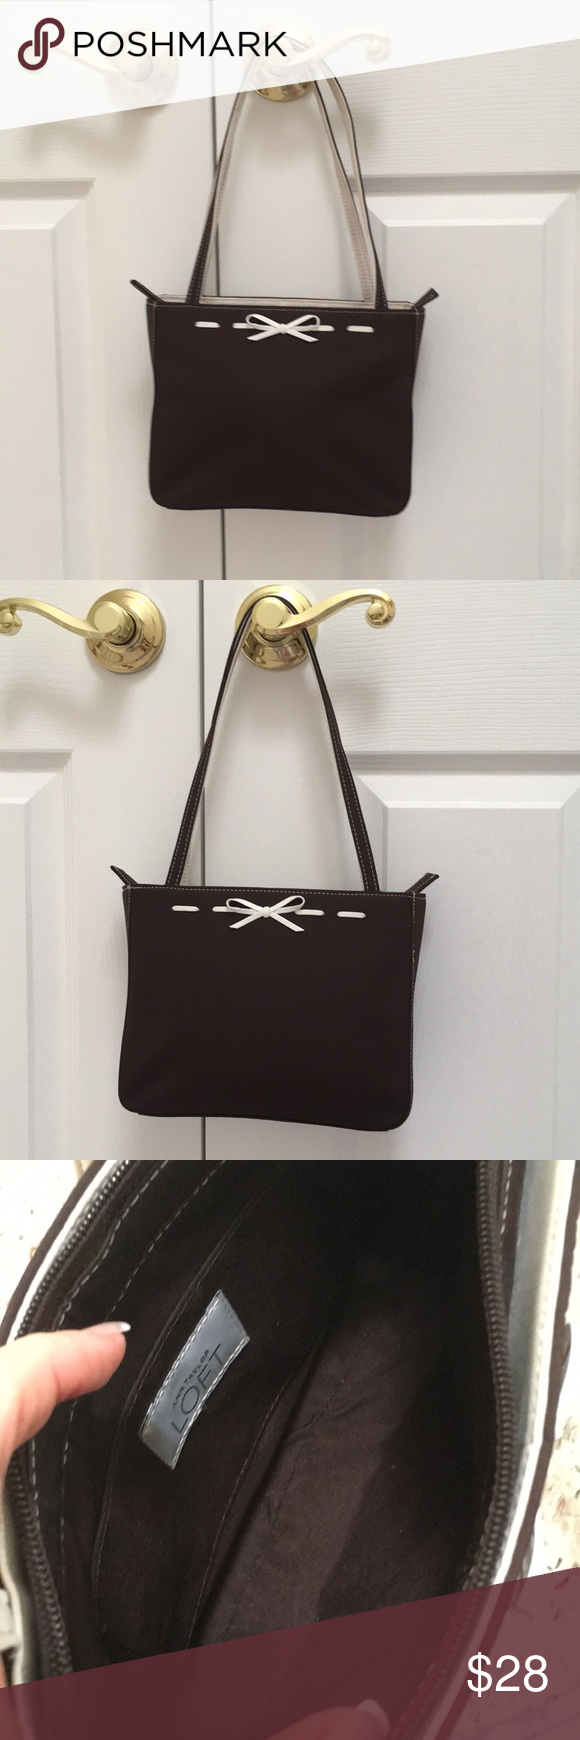 Ann Taylor Loft Purse Small Very Cute With White Bows On